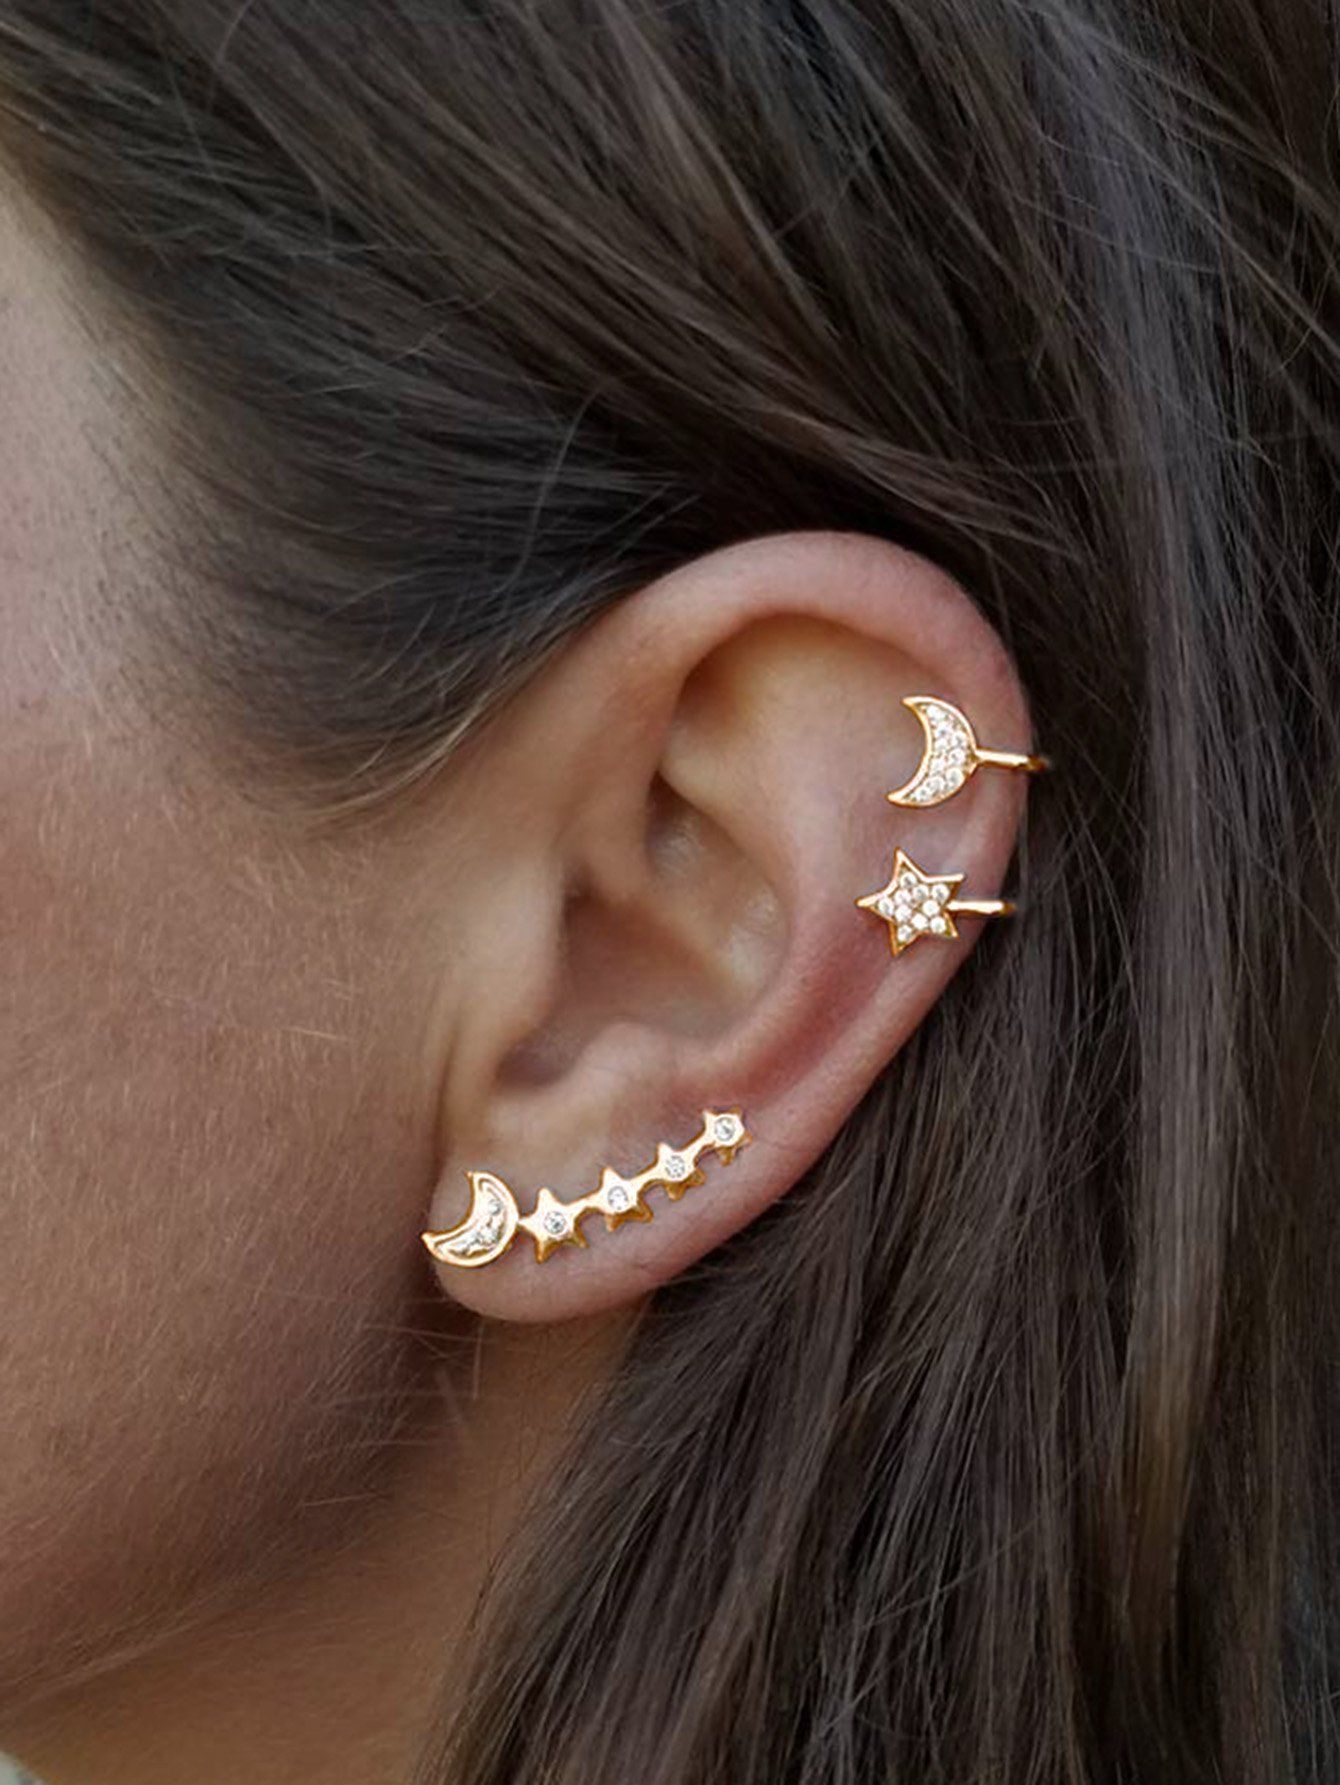 Genuine 9ct Gold Upper Ear Helix Cartilage Cubic Zirconia Lightning Bolt Earring